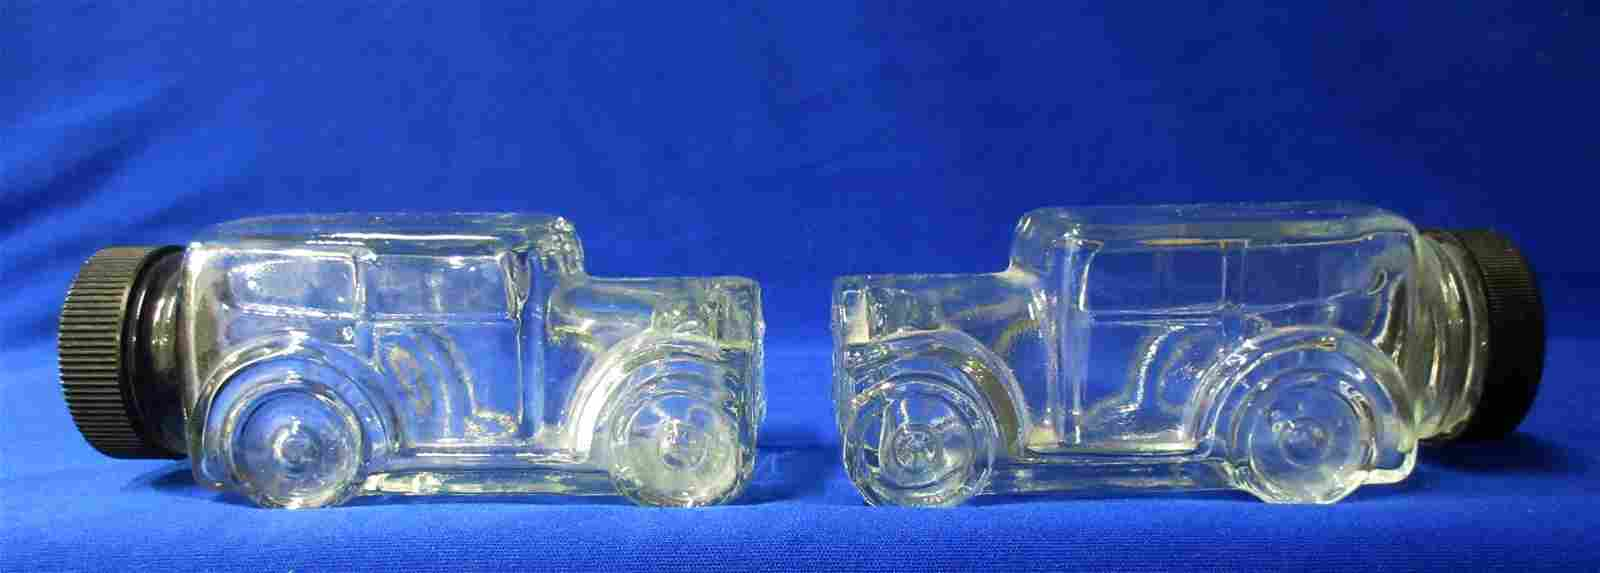 2 Glass Automobile Candy Containers